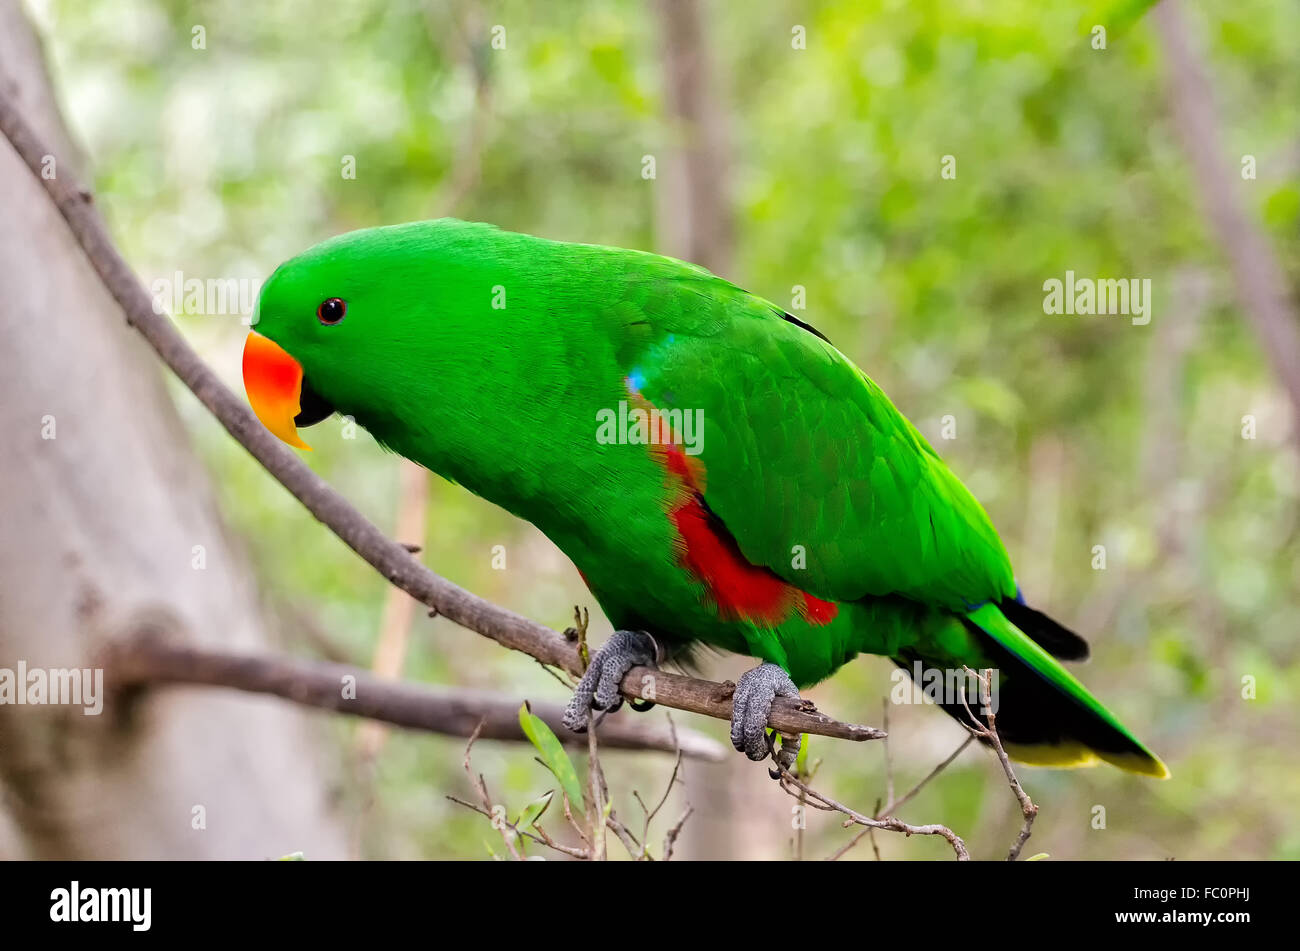 Parrot - Stock Image